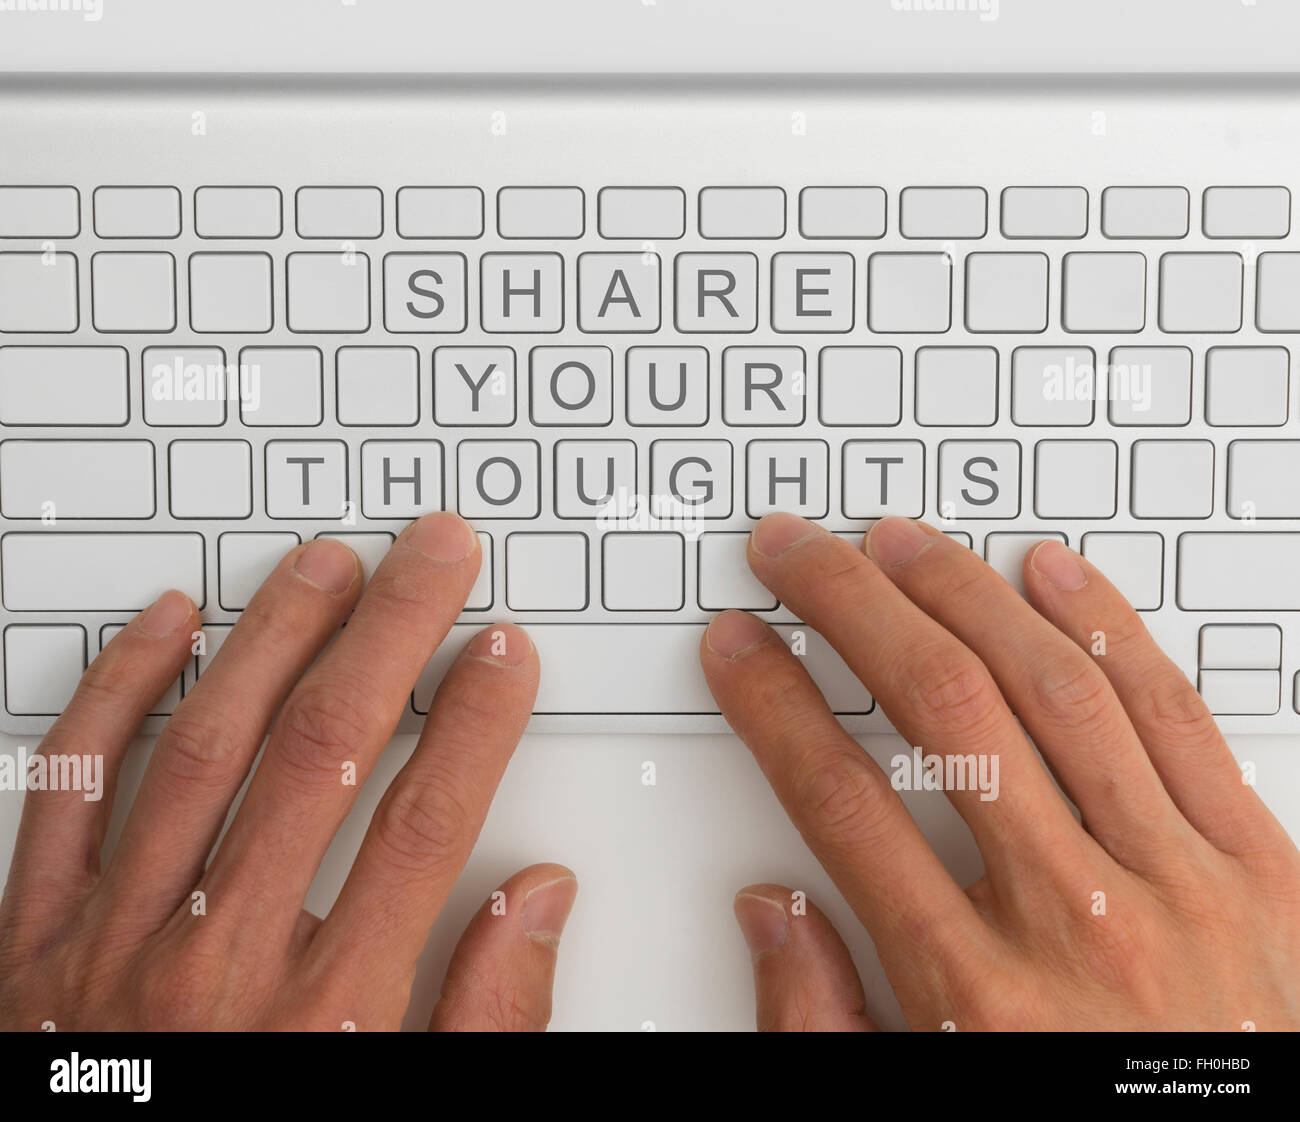 Share your thoughts concept - Stock Image